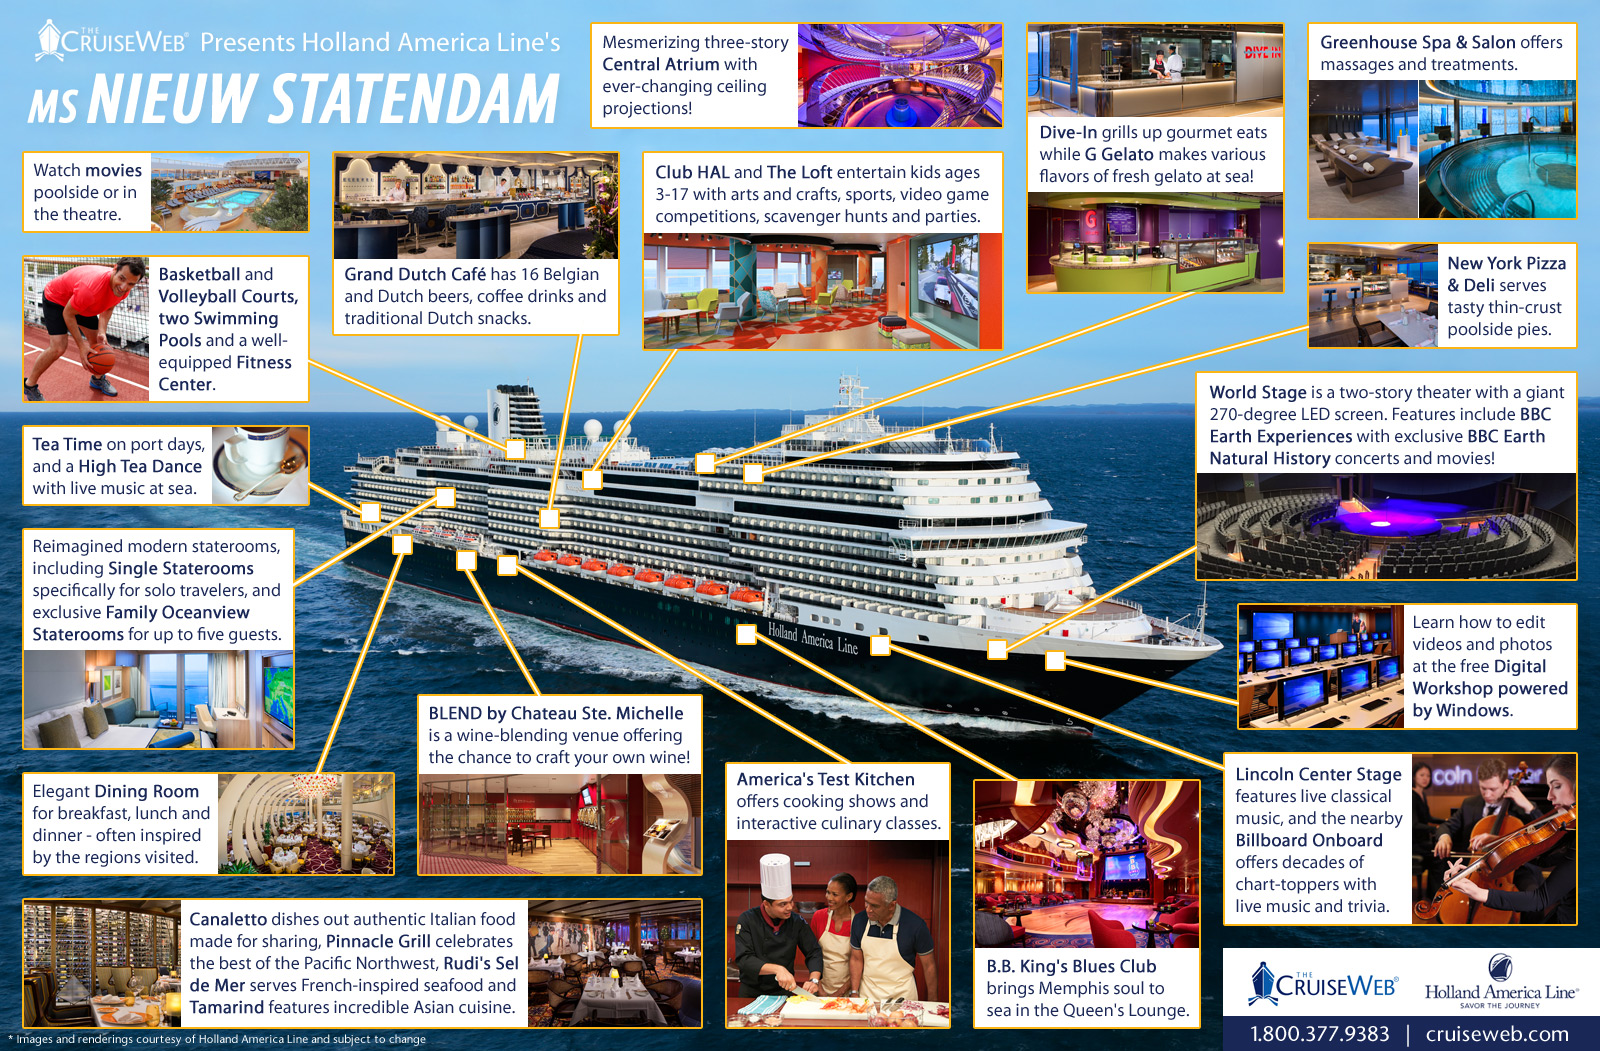 Inside Holland America's ms Nieuw Statendam: An Infographic